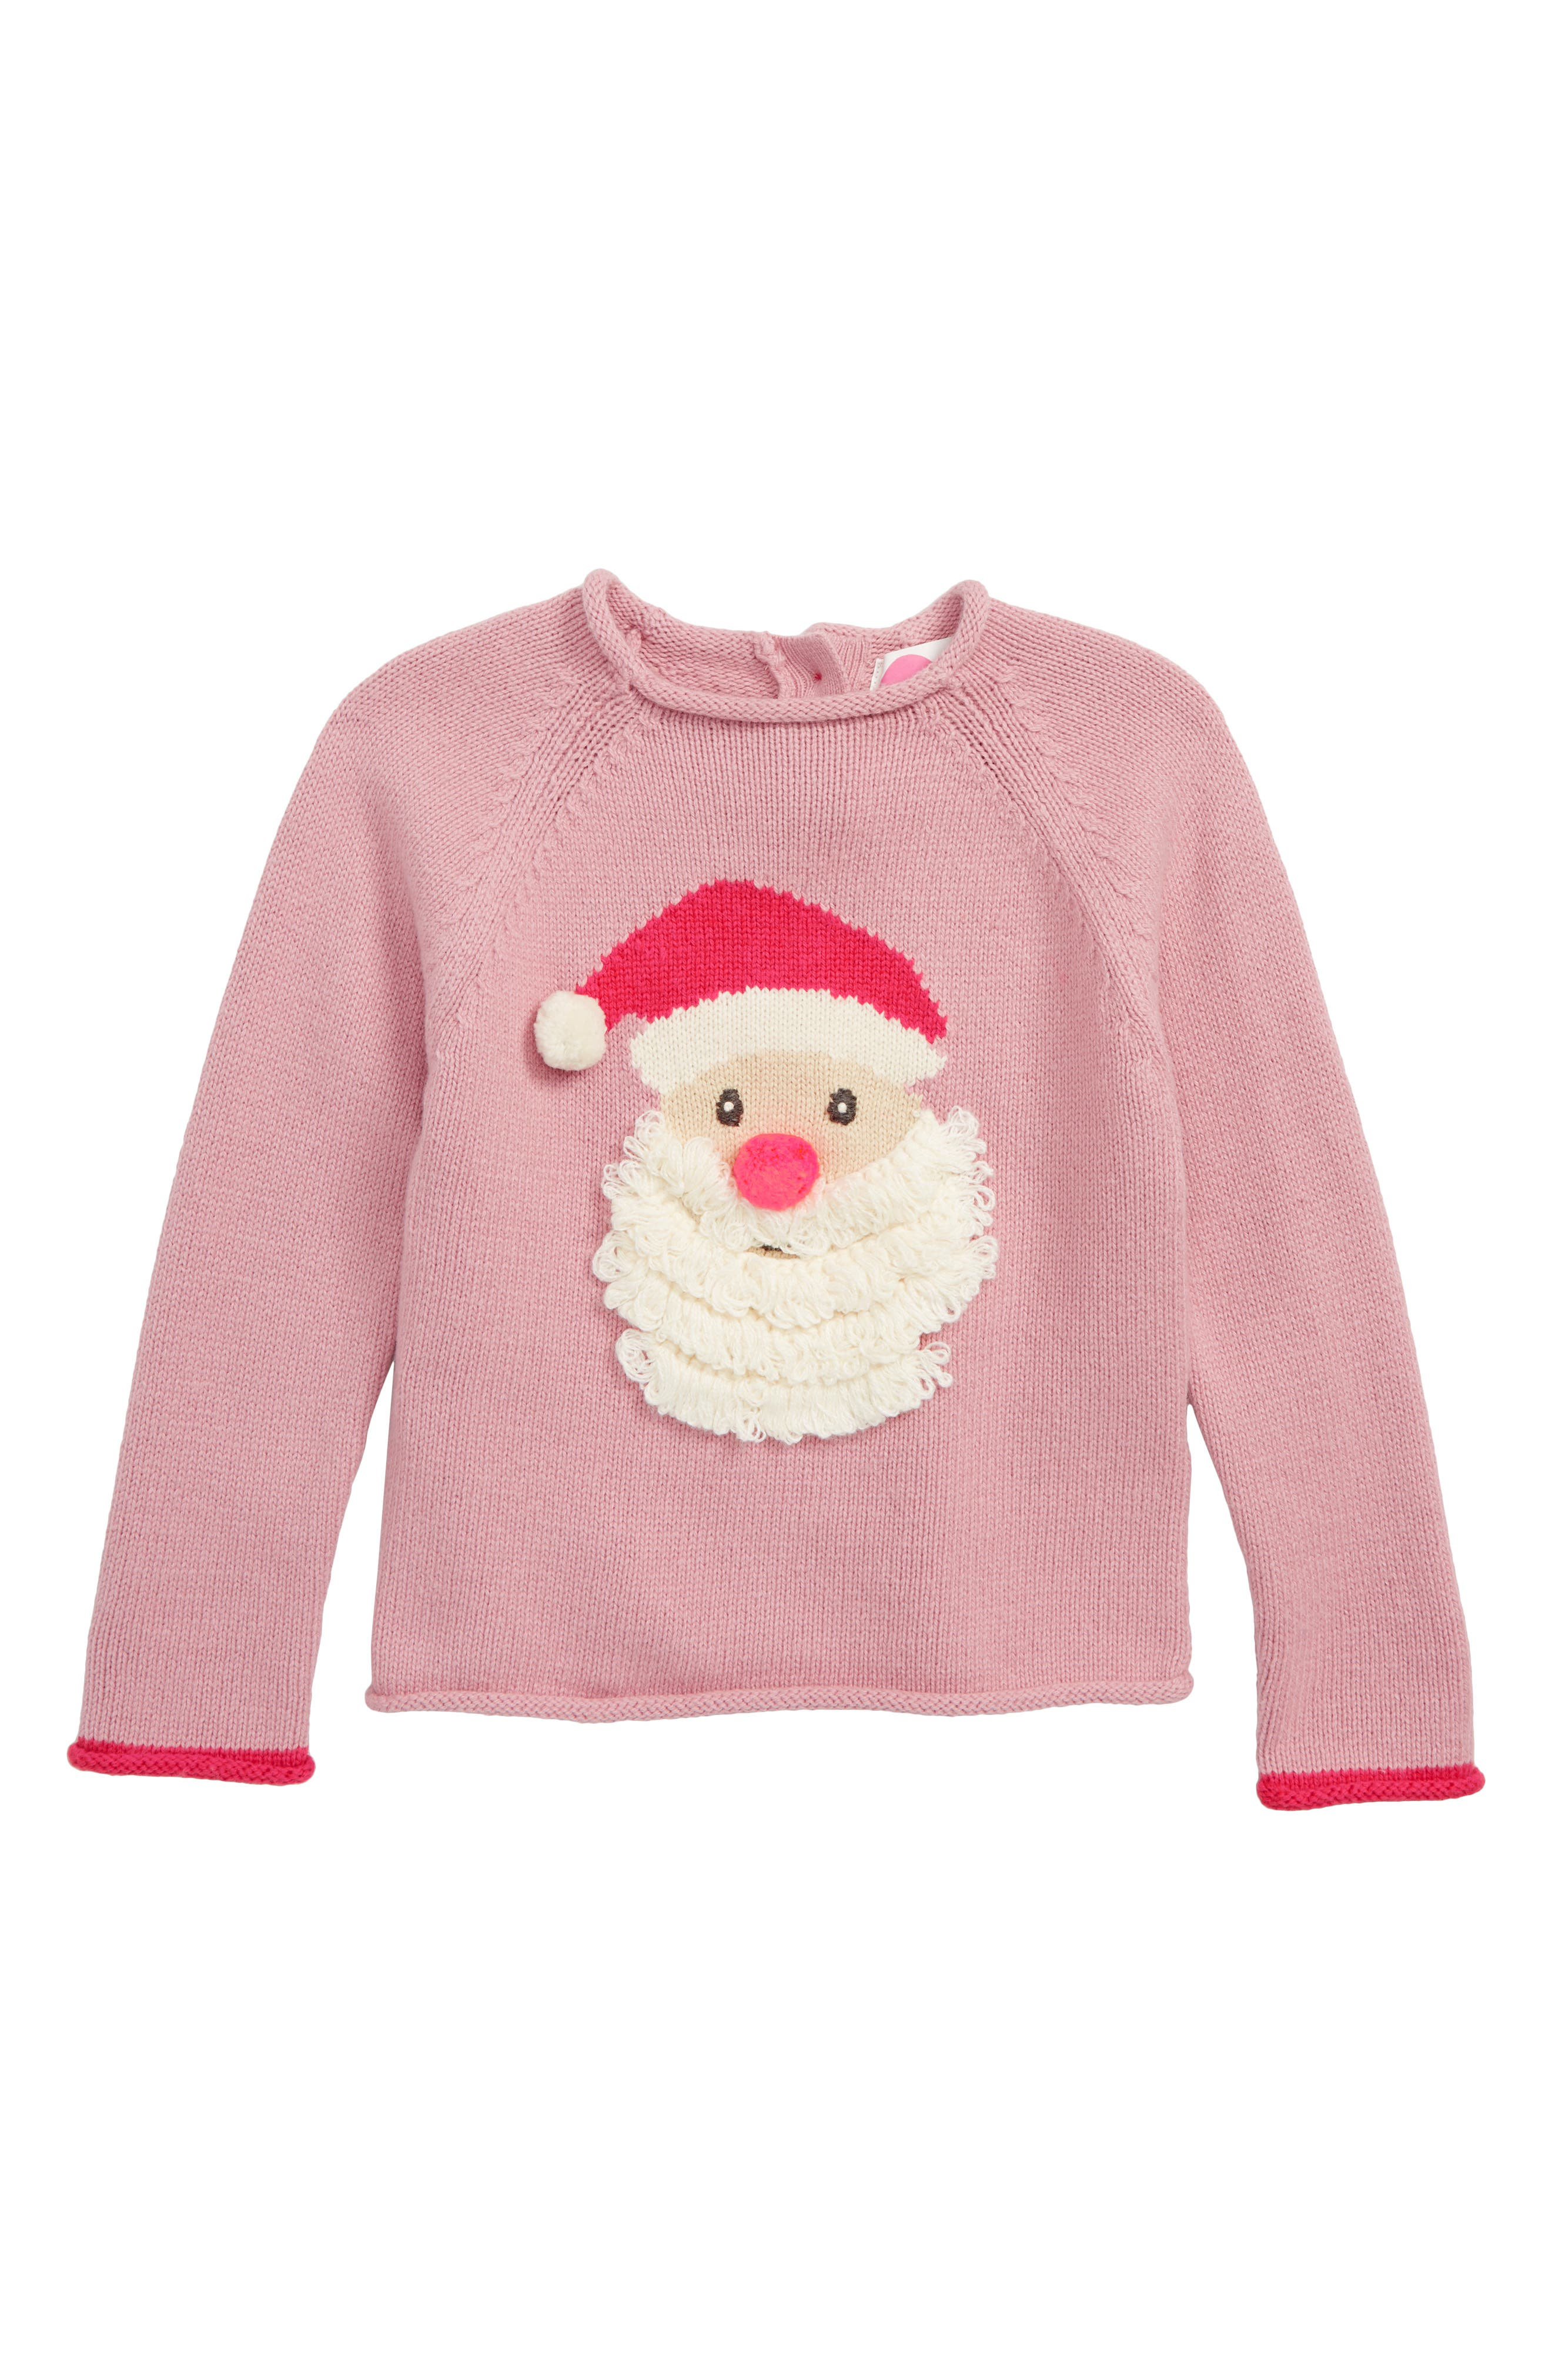 Christmas Day Sweater,                         Main,                         color, VINTAGE PINK FATHER CHRISTM